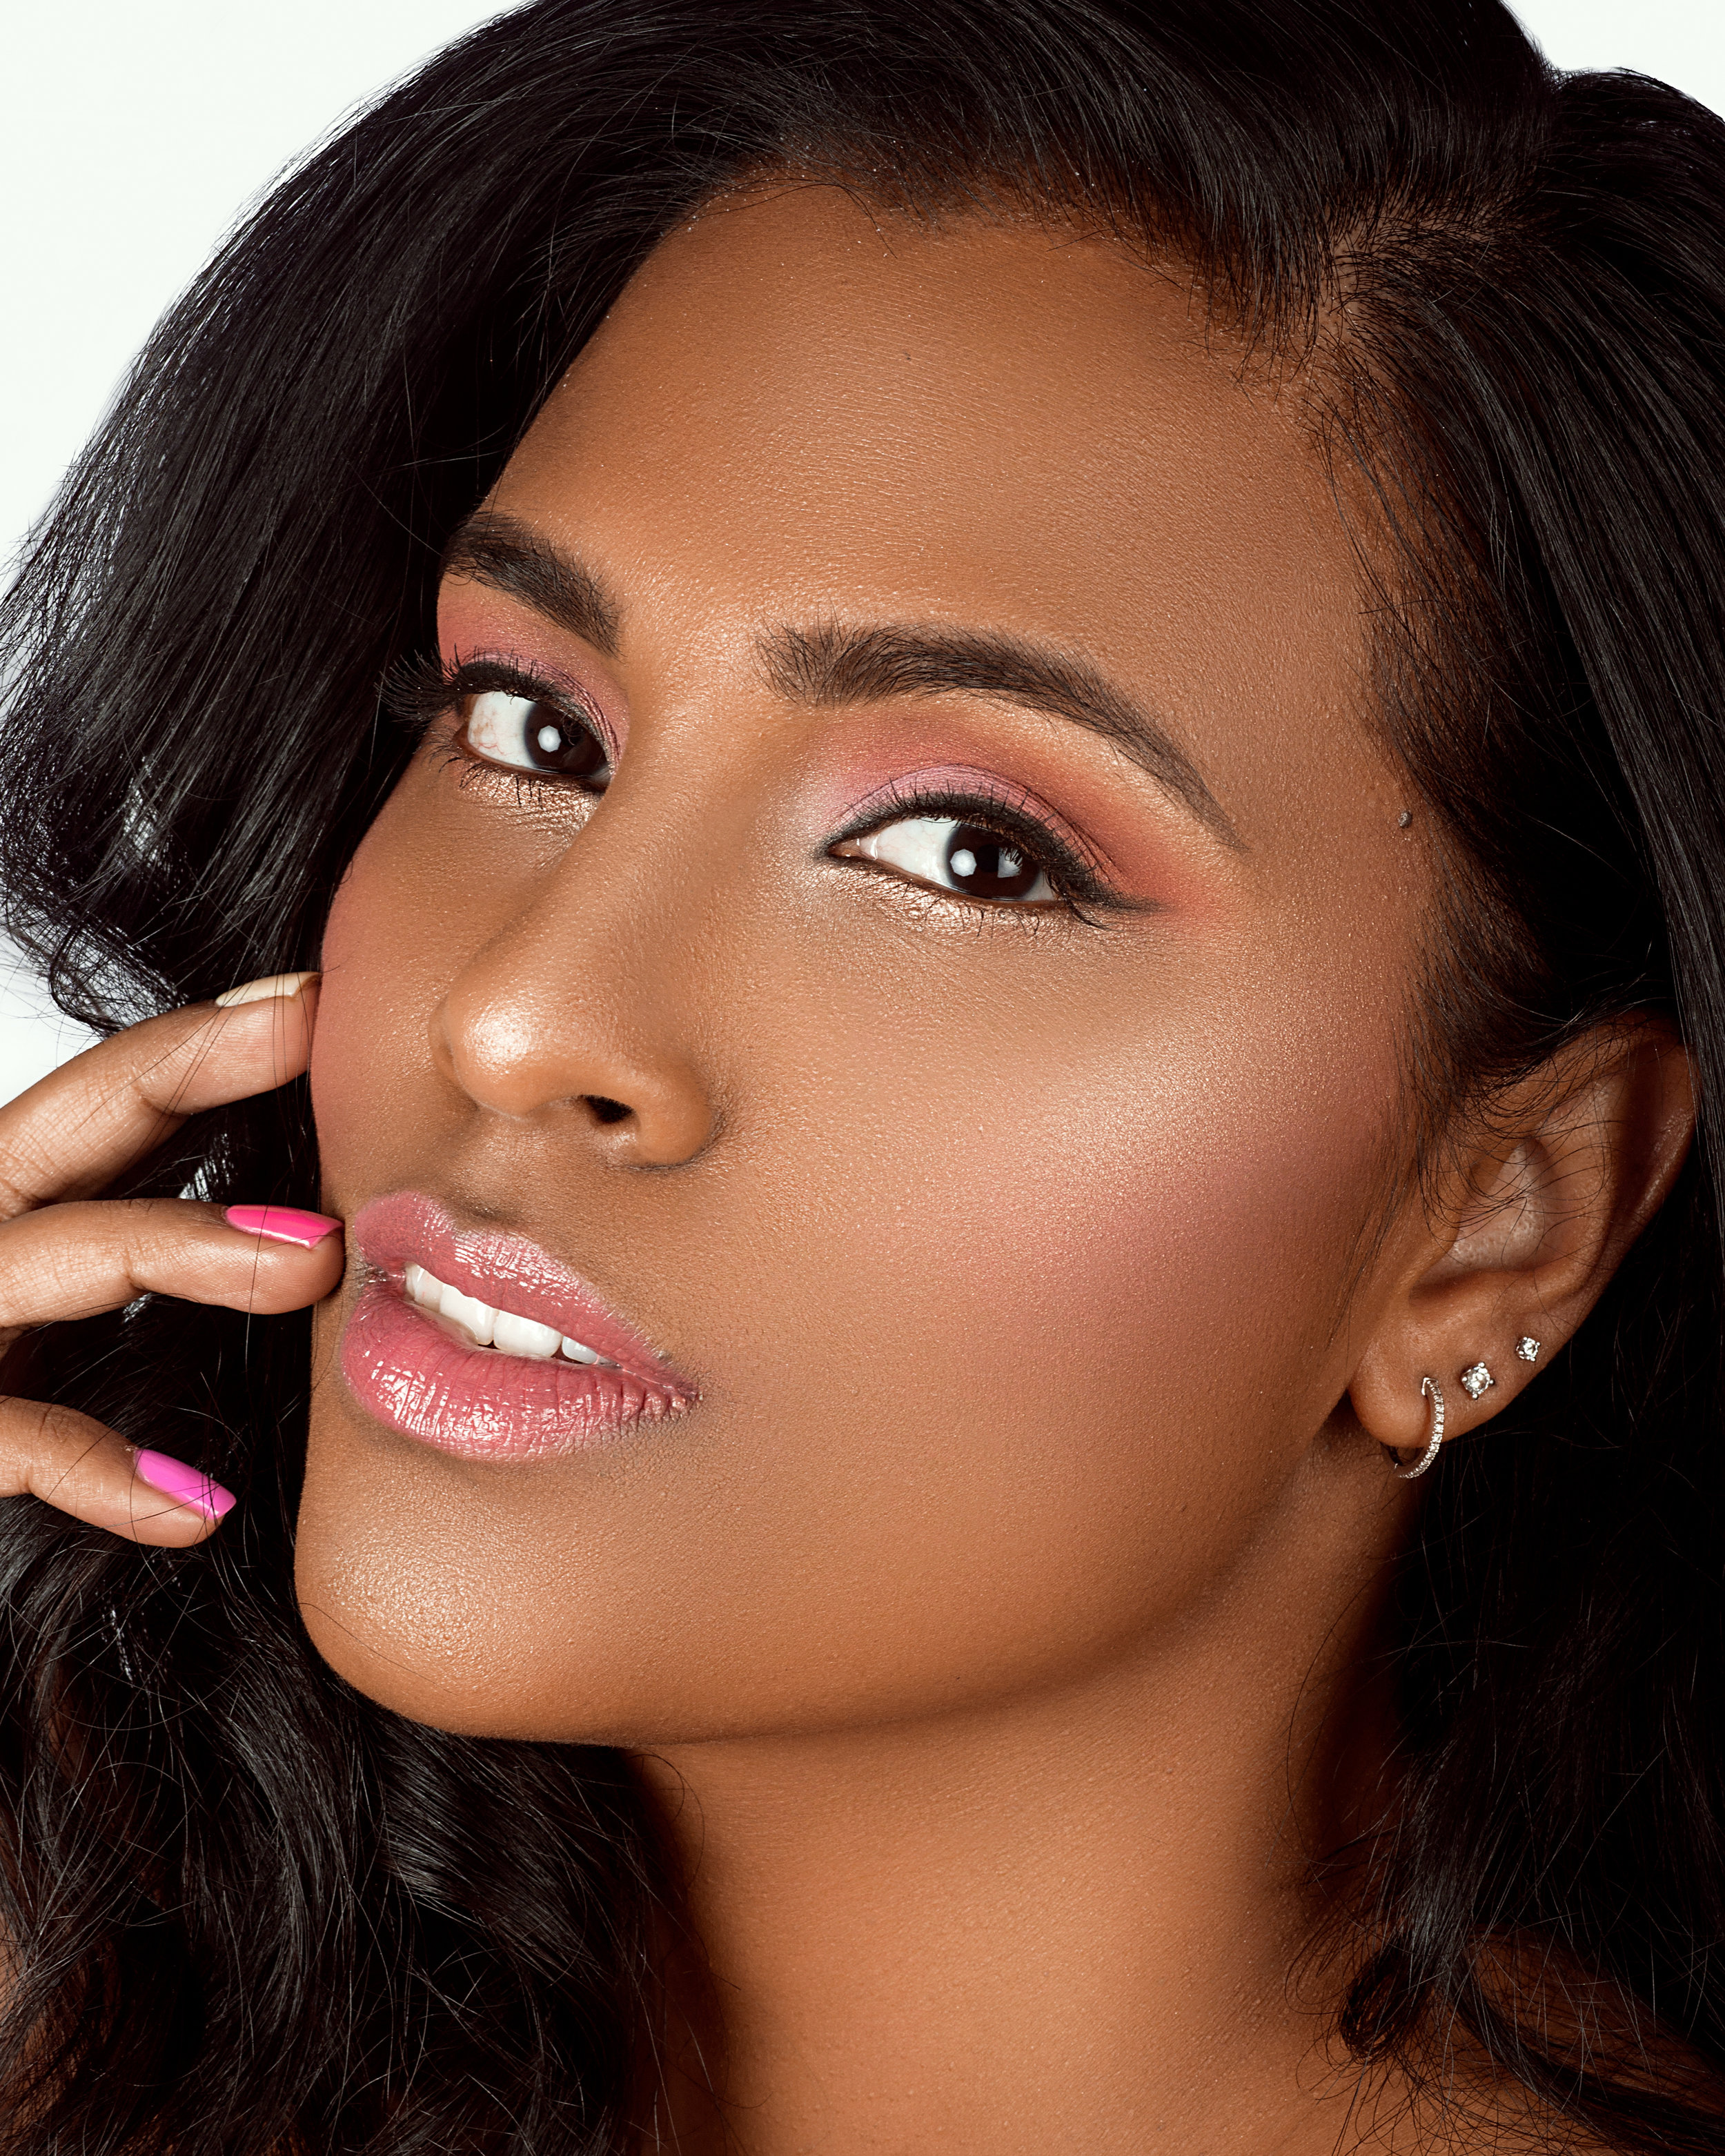 Natural Makeup with Highlighted, Glowing, Dewy Skin and Pink Eyeshadow by Jaynelle Lording